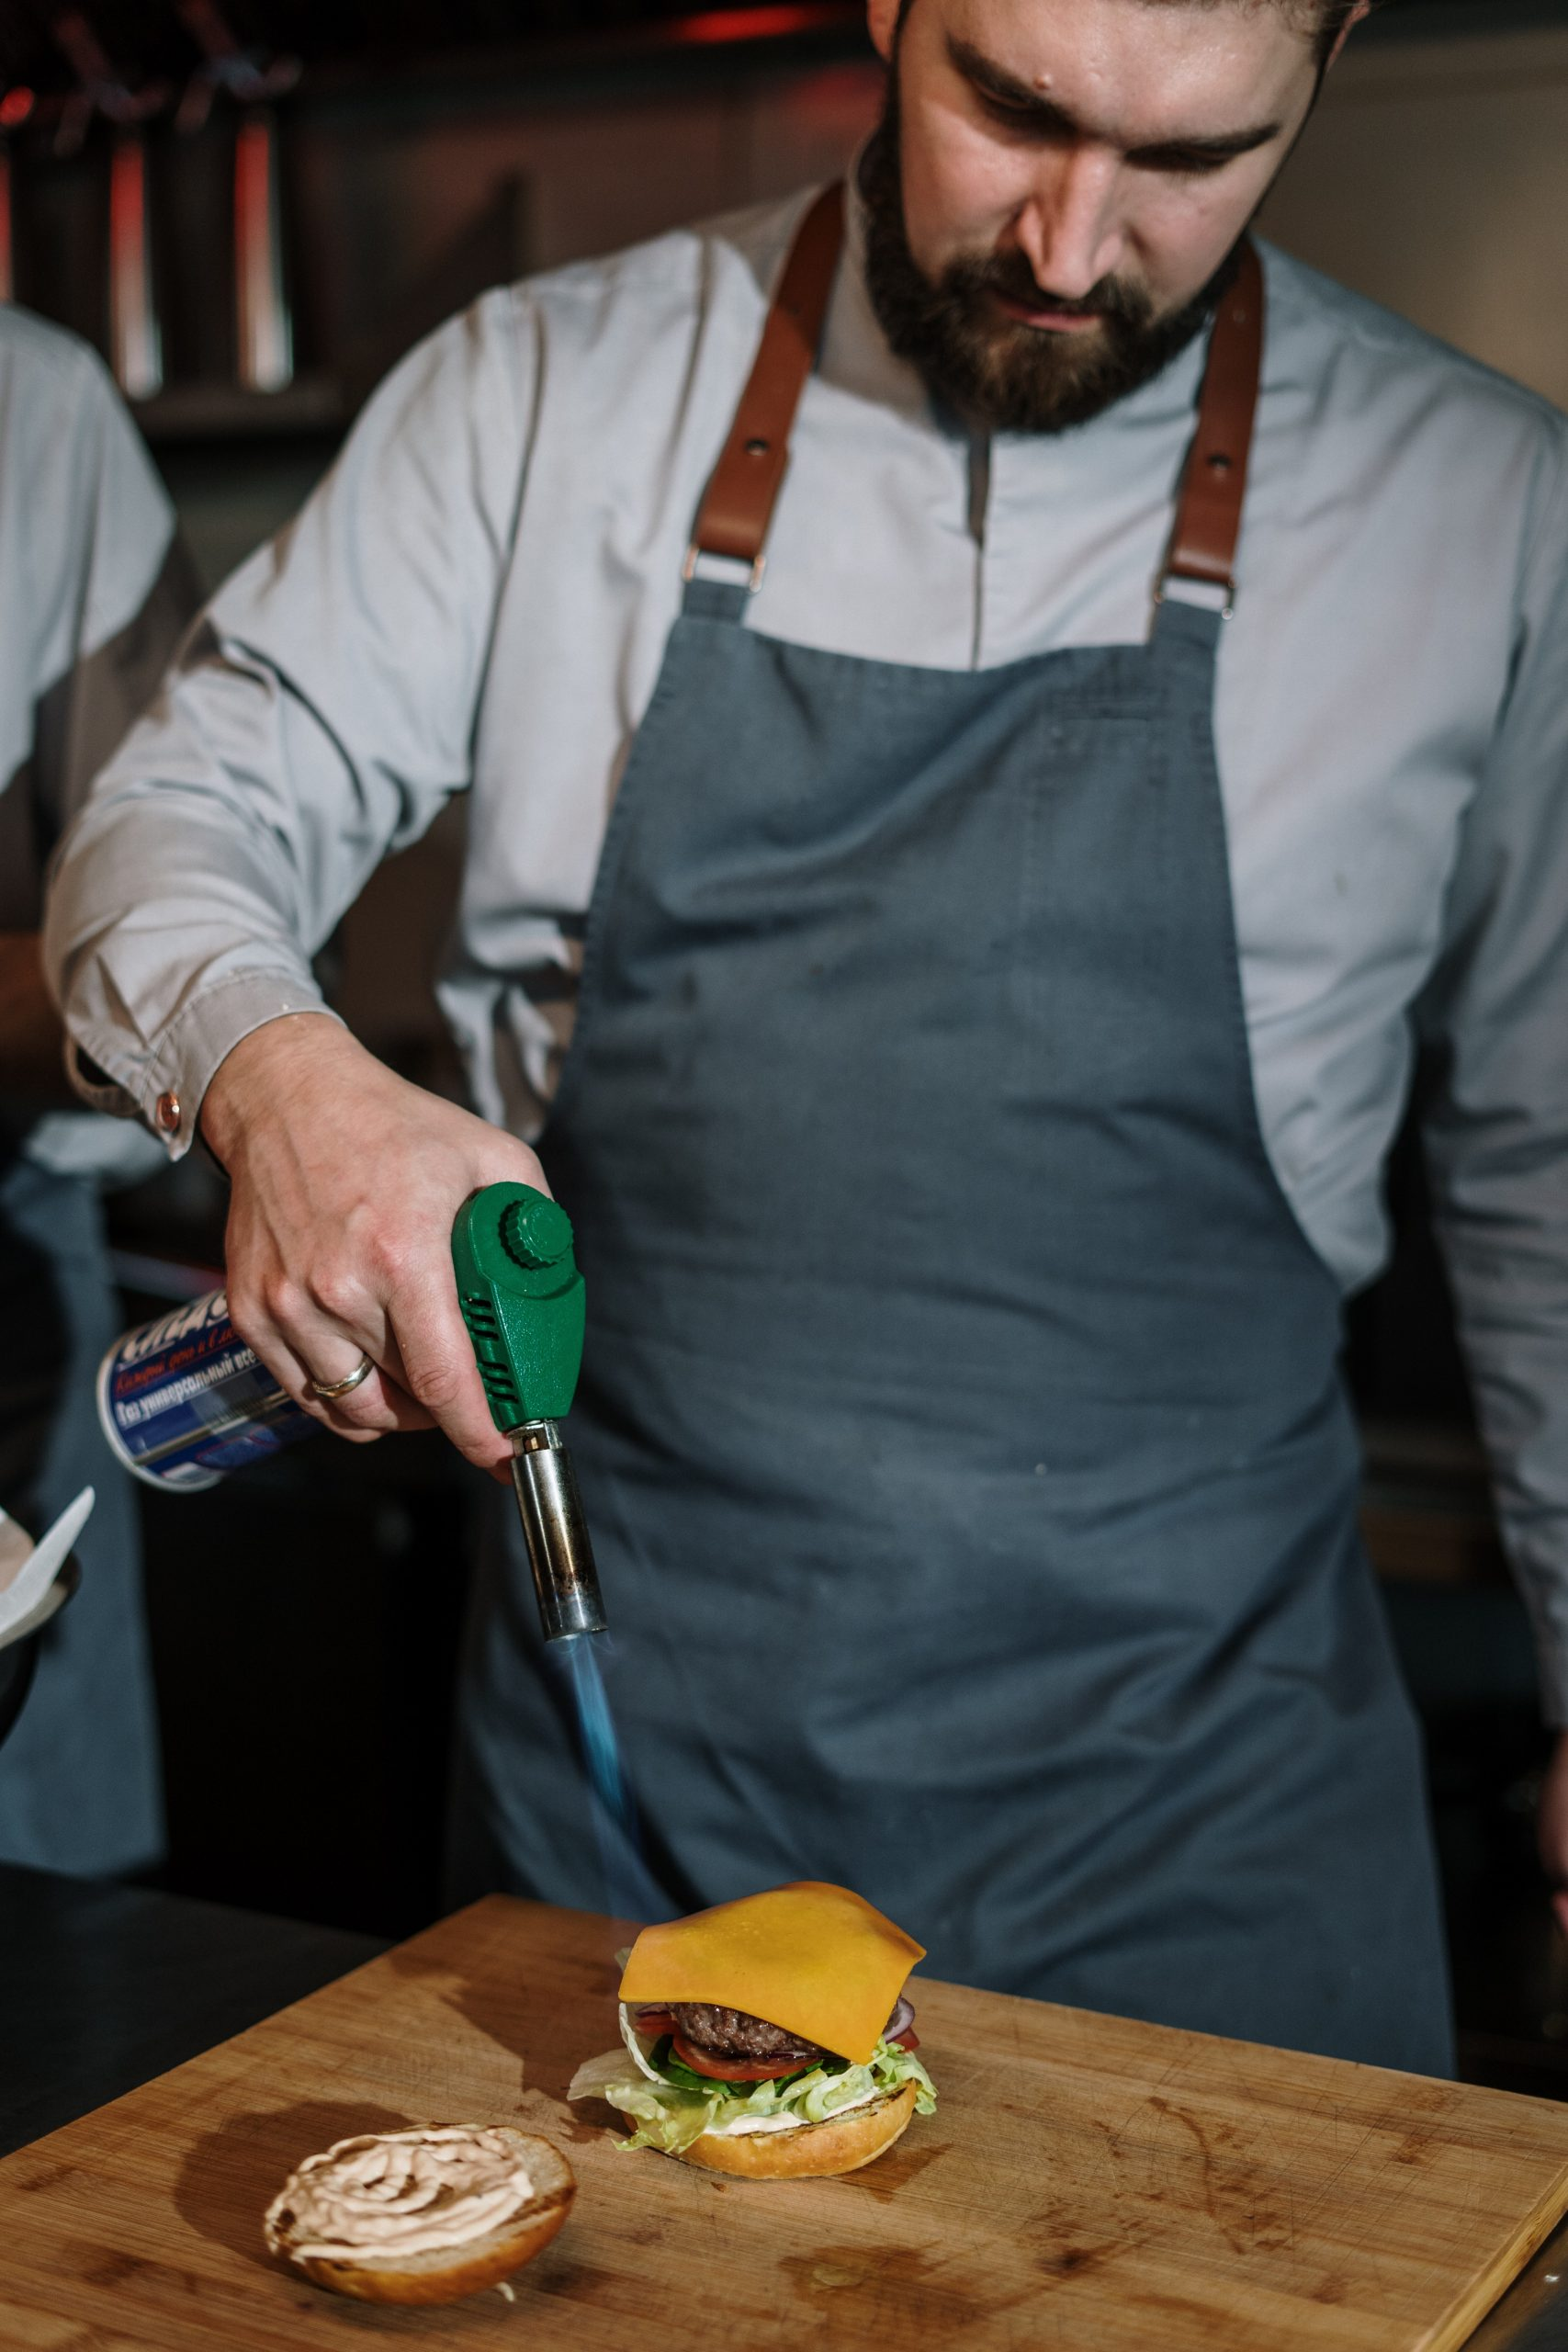 man-in-white-dress-shirt-holding-green-and-silver-hand-tool-4253712